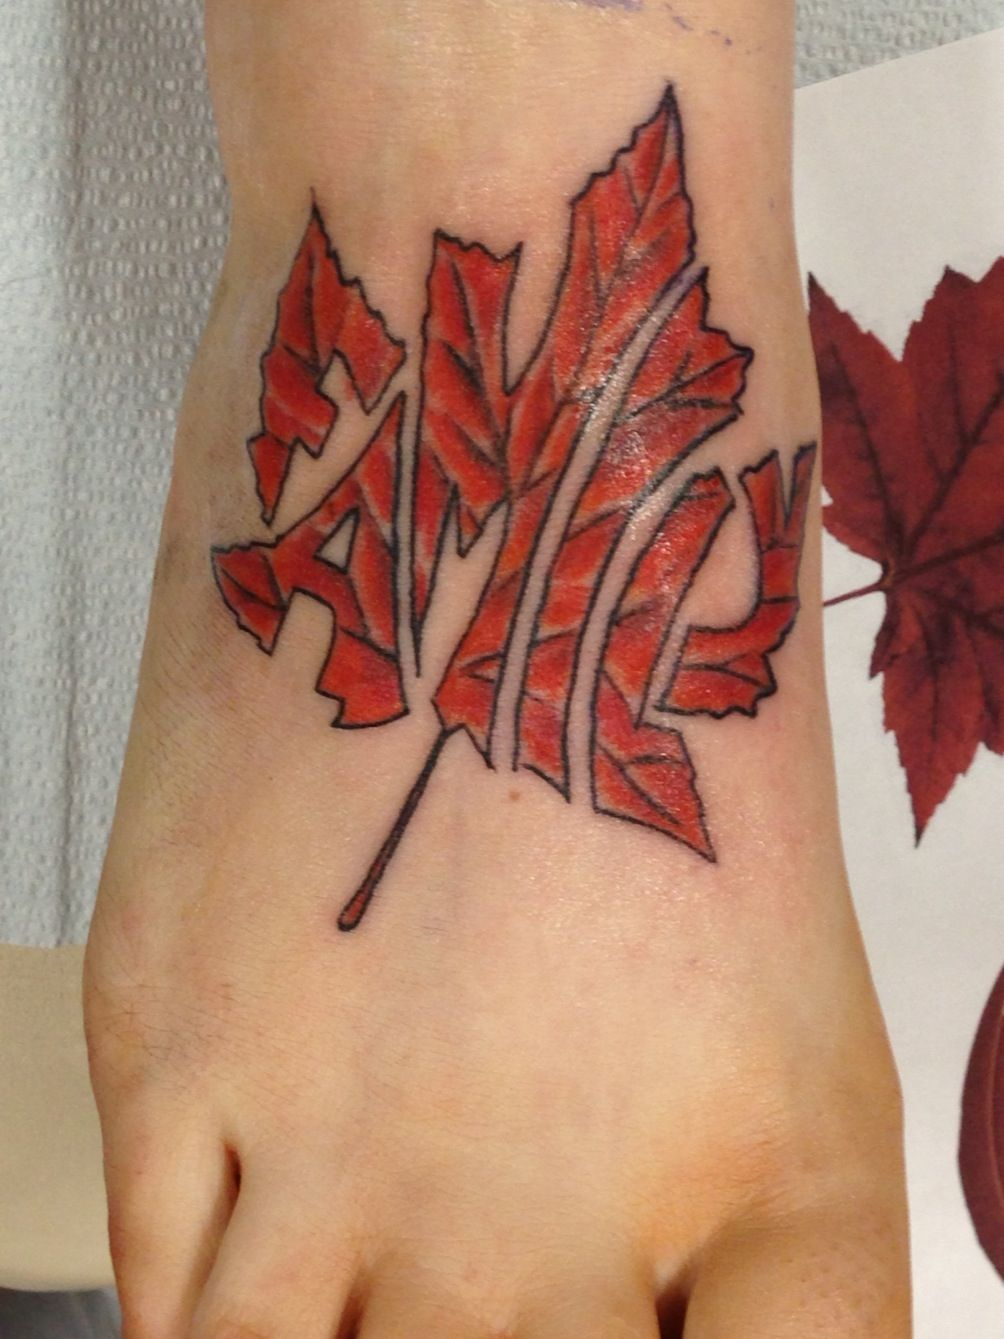 Name canadian flag ripping through skin tattoo designjpg pictures - Shaded Flag Under The Skin See More My Canadian Family Tattoo On My Foot Ouch